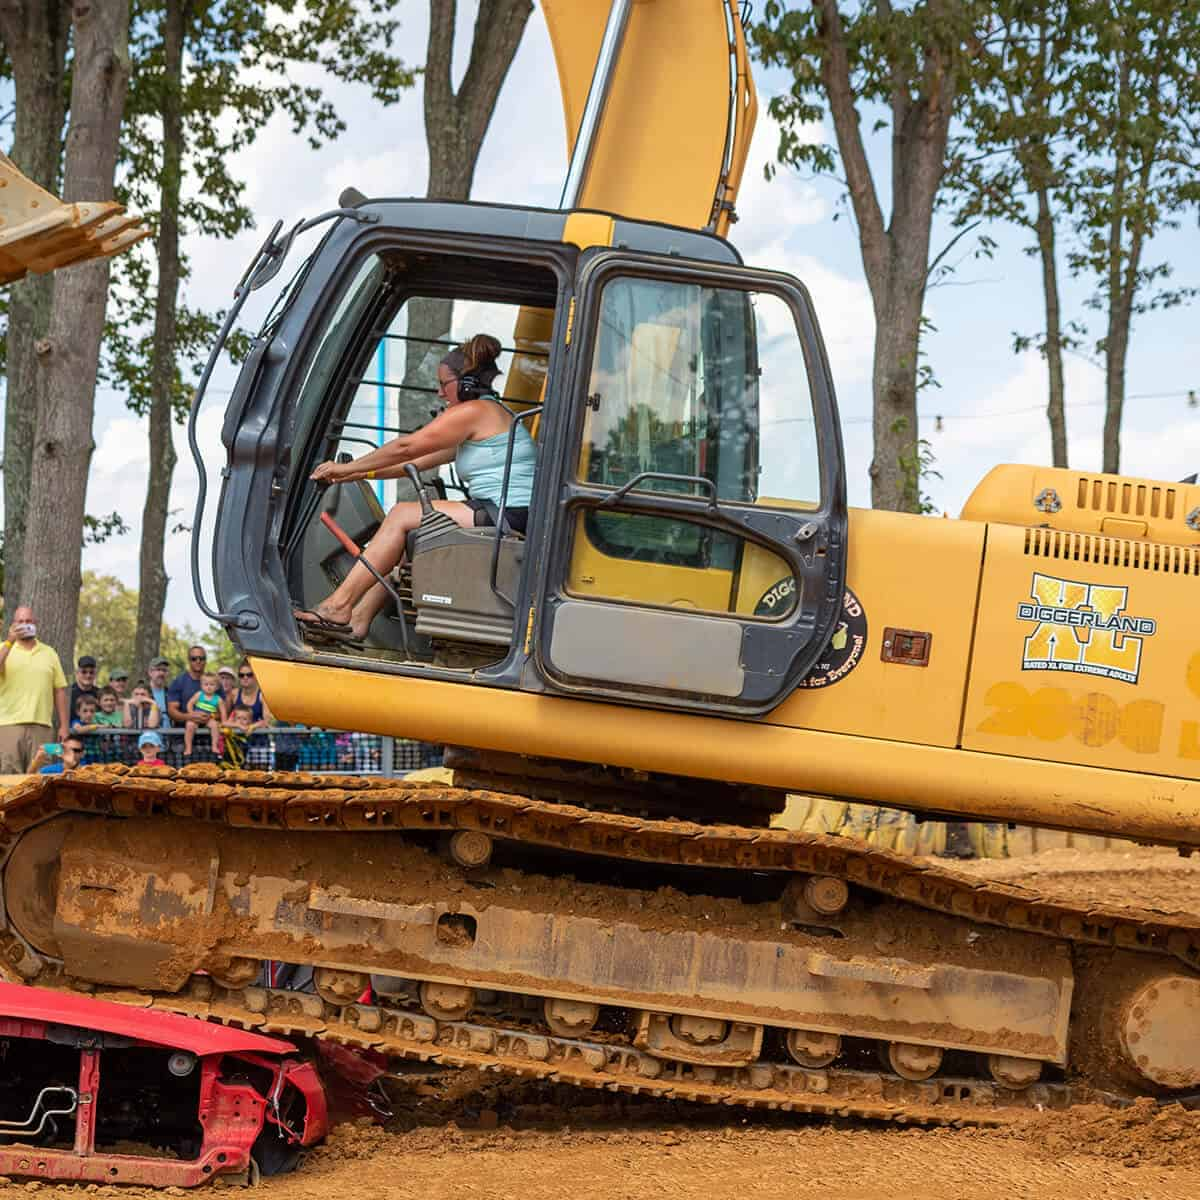 XL experience with a woman crushing a car on a real excavator